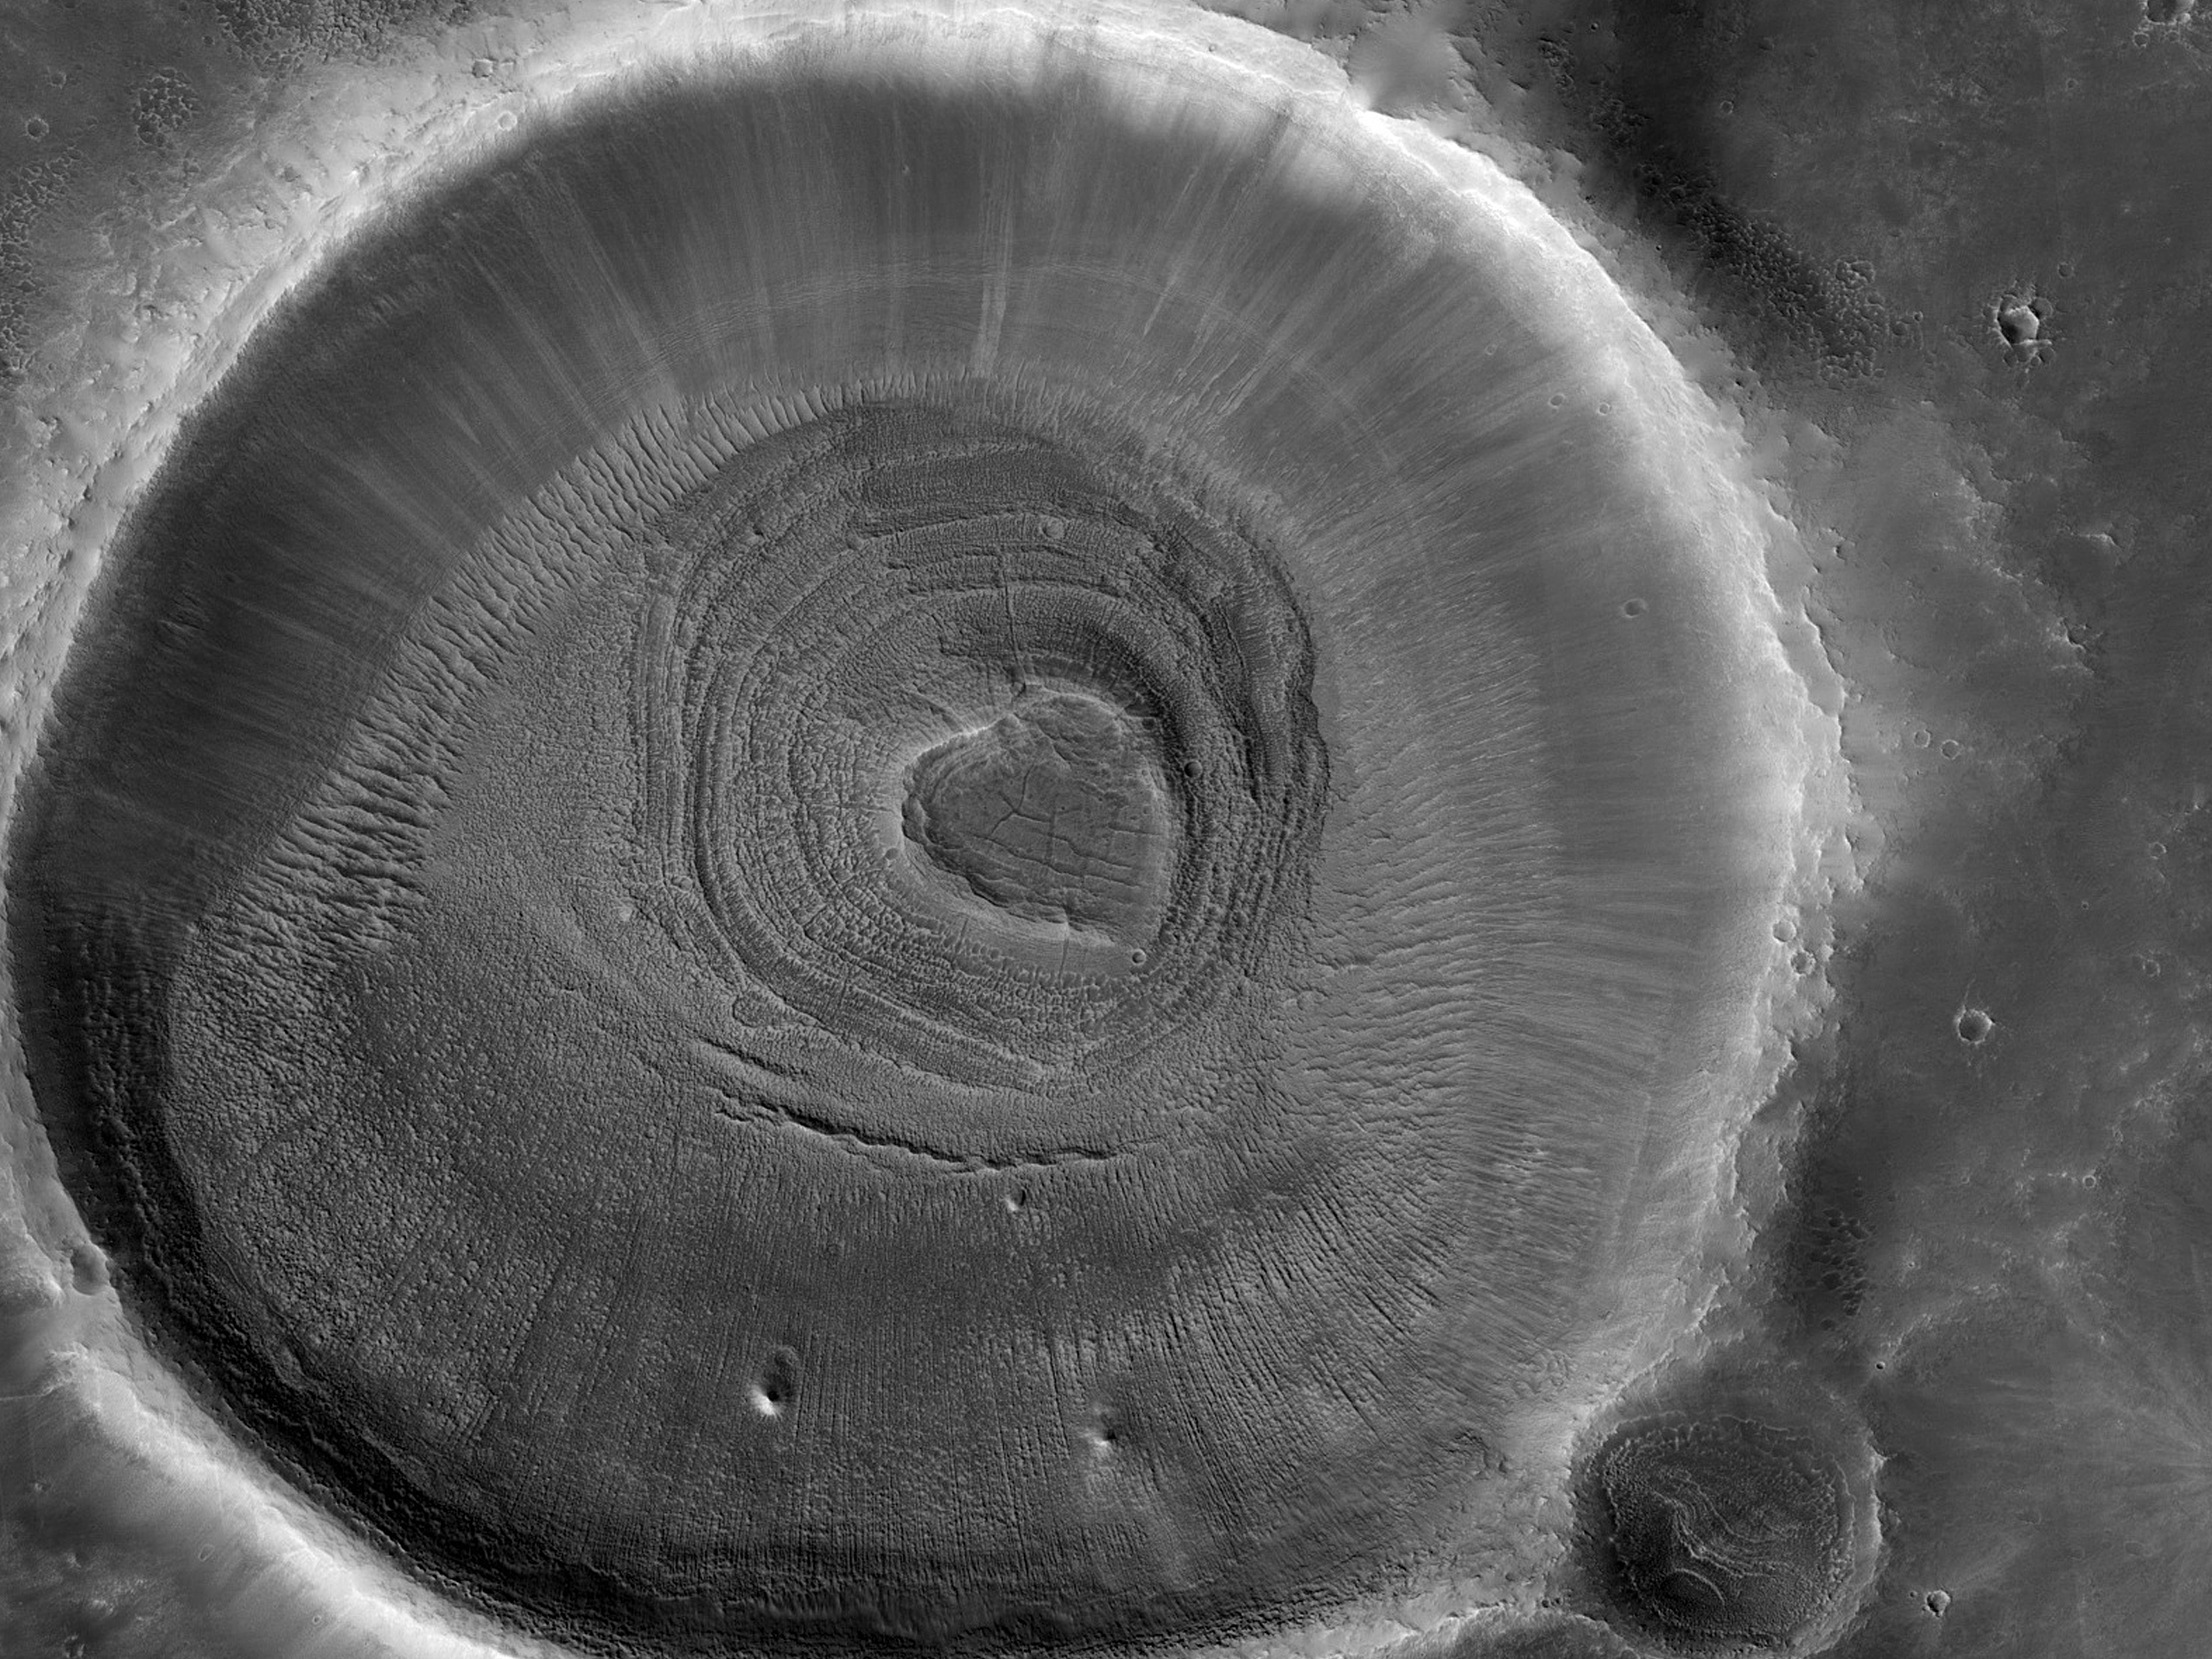 A Small Crater with a Layered Sedimentary Mound